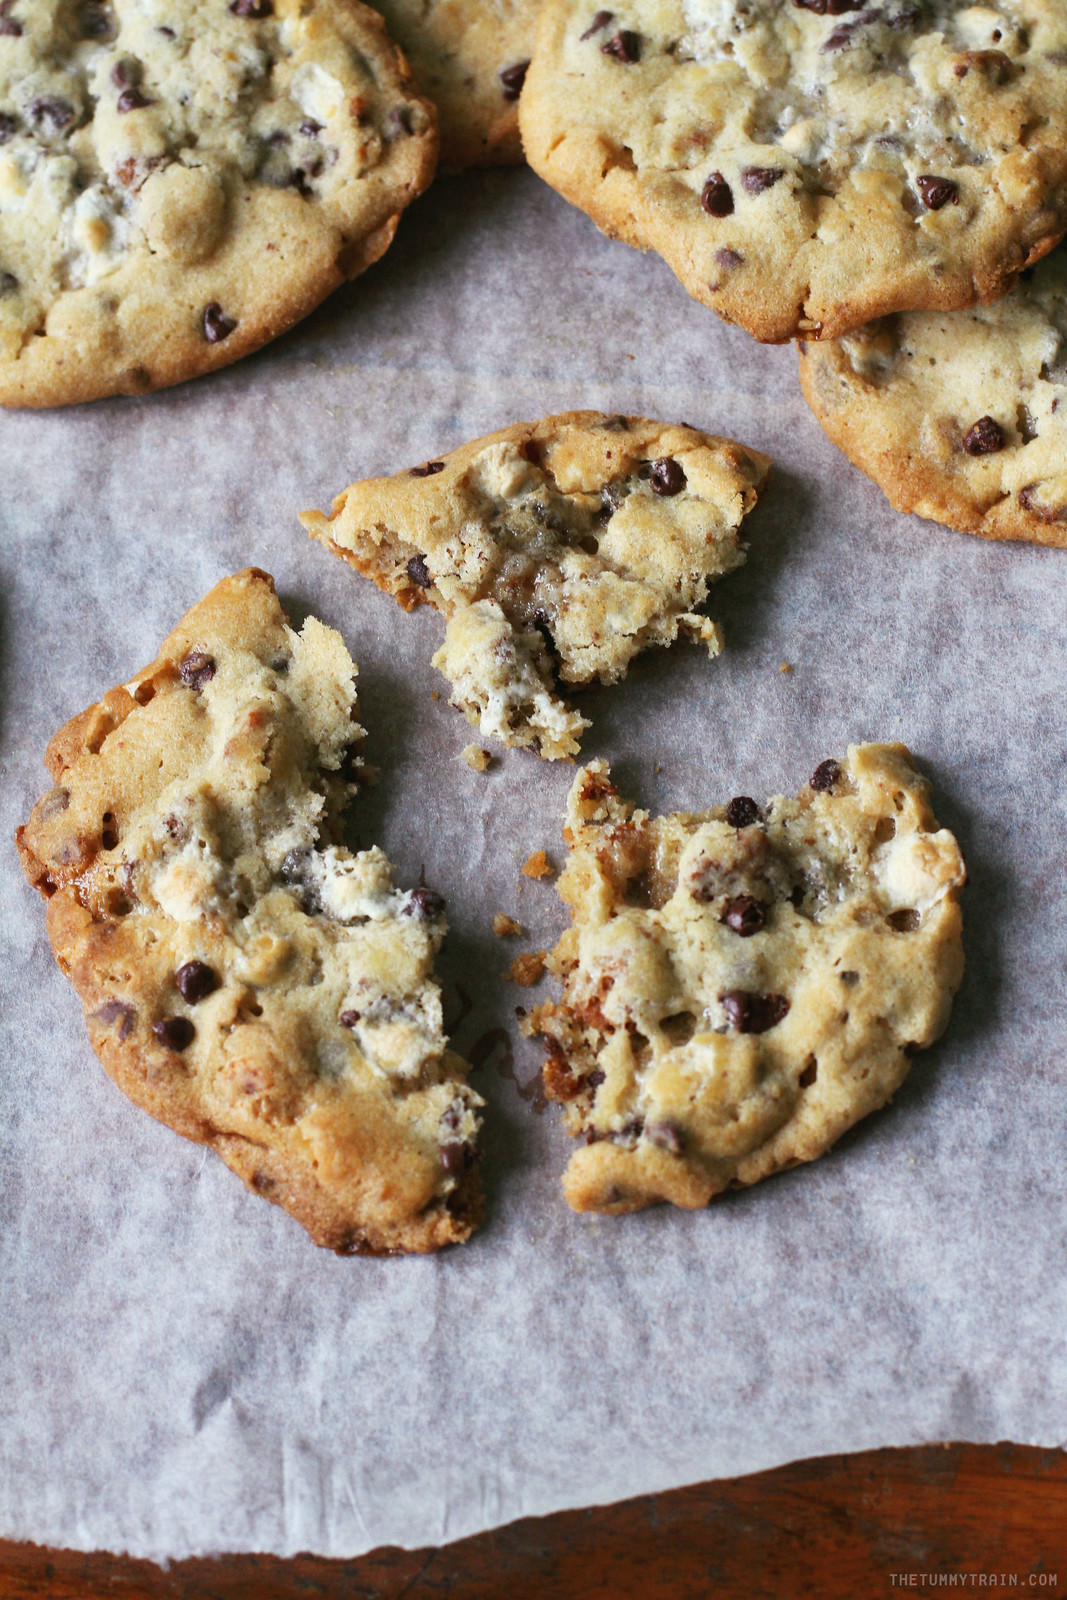 30873908672 509dae3f81 h - The well loved Cornflake Marshmallow Chocolate Chip Cookies from Milk Bar NYC